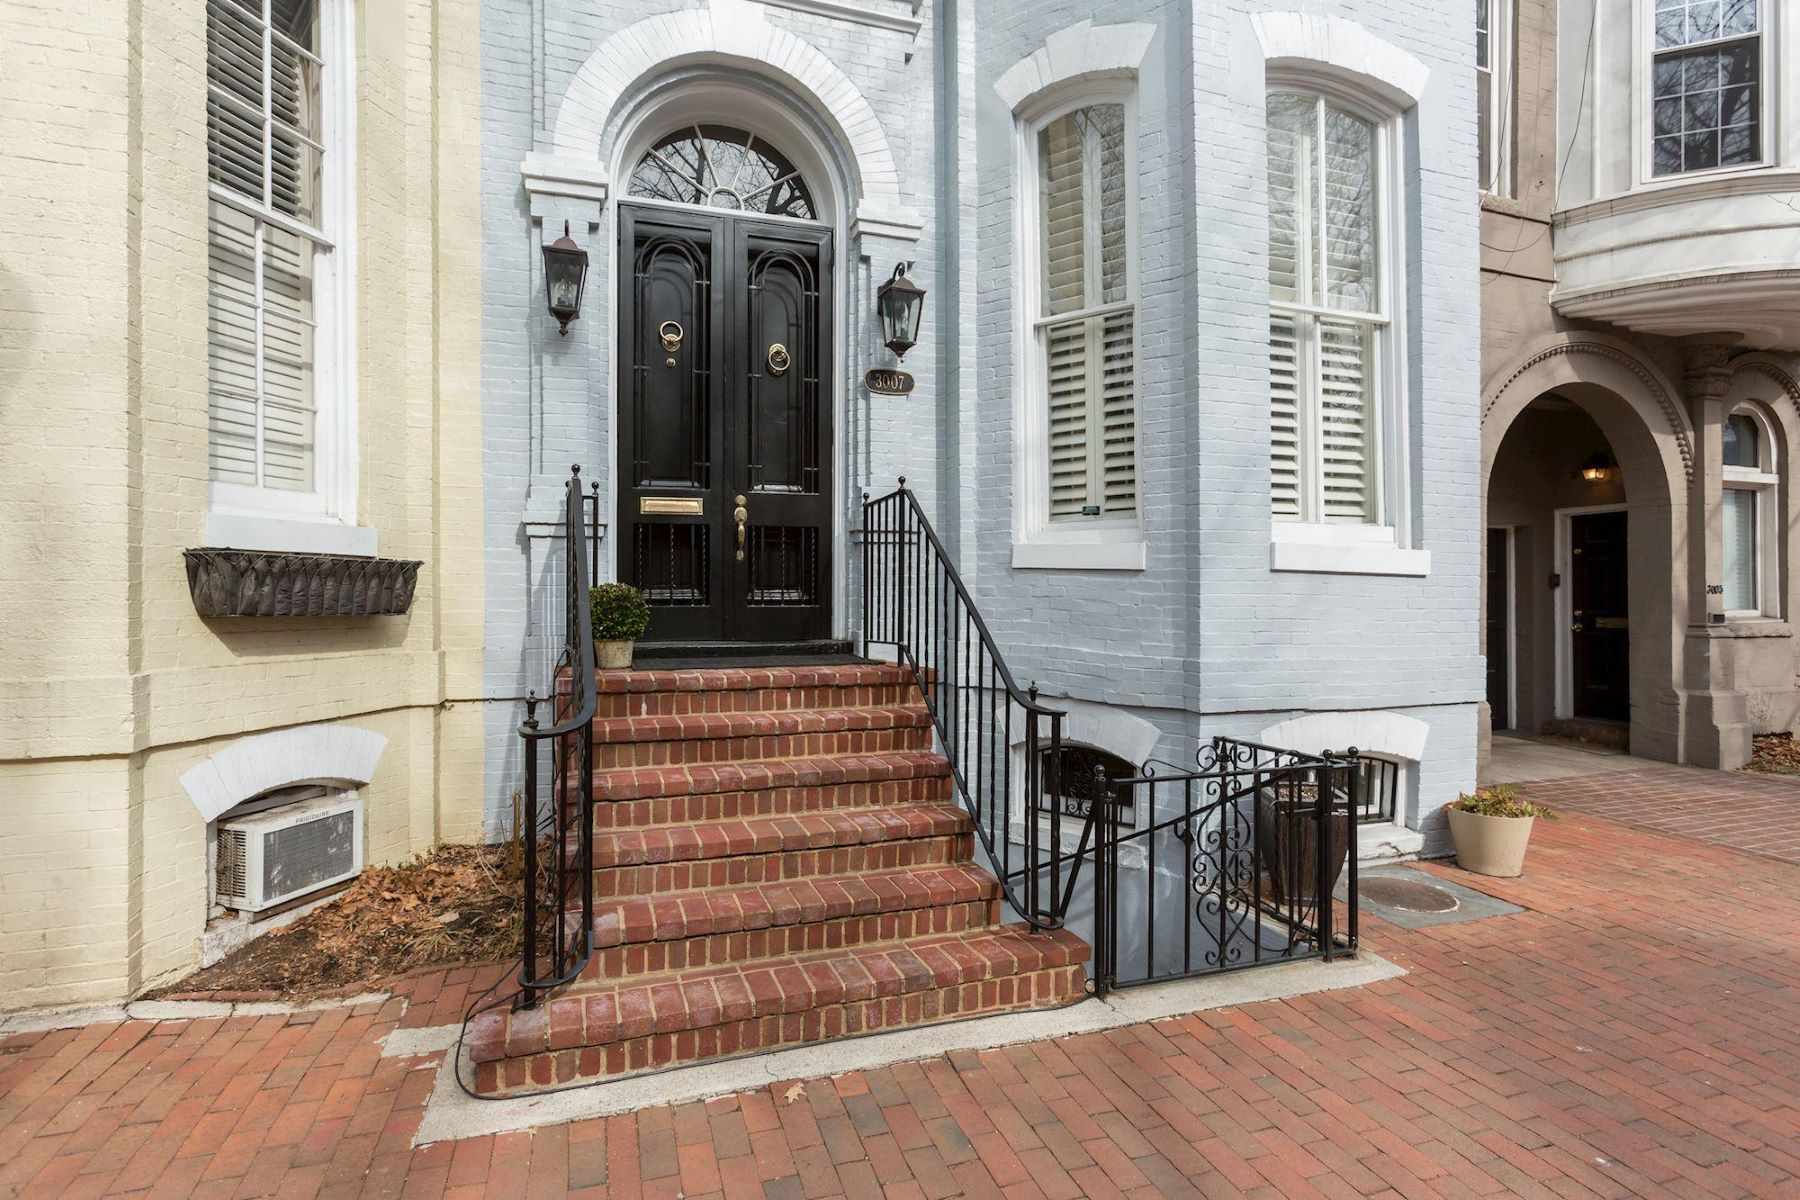 Single Family Home for Sale at 3007 P St Nw 3007 P St Nw Washington, District Of Columbia 20007 United States